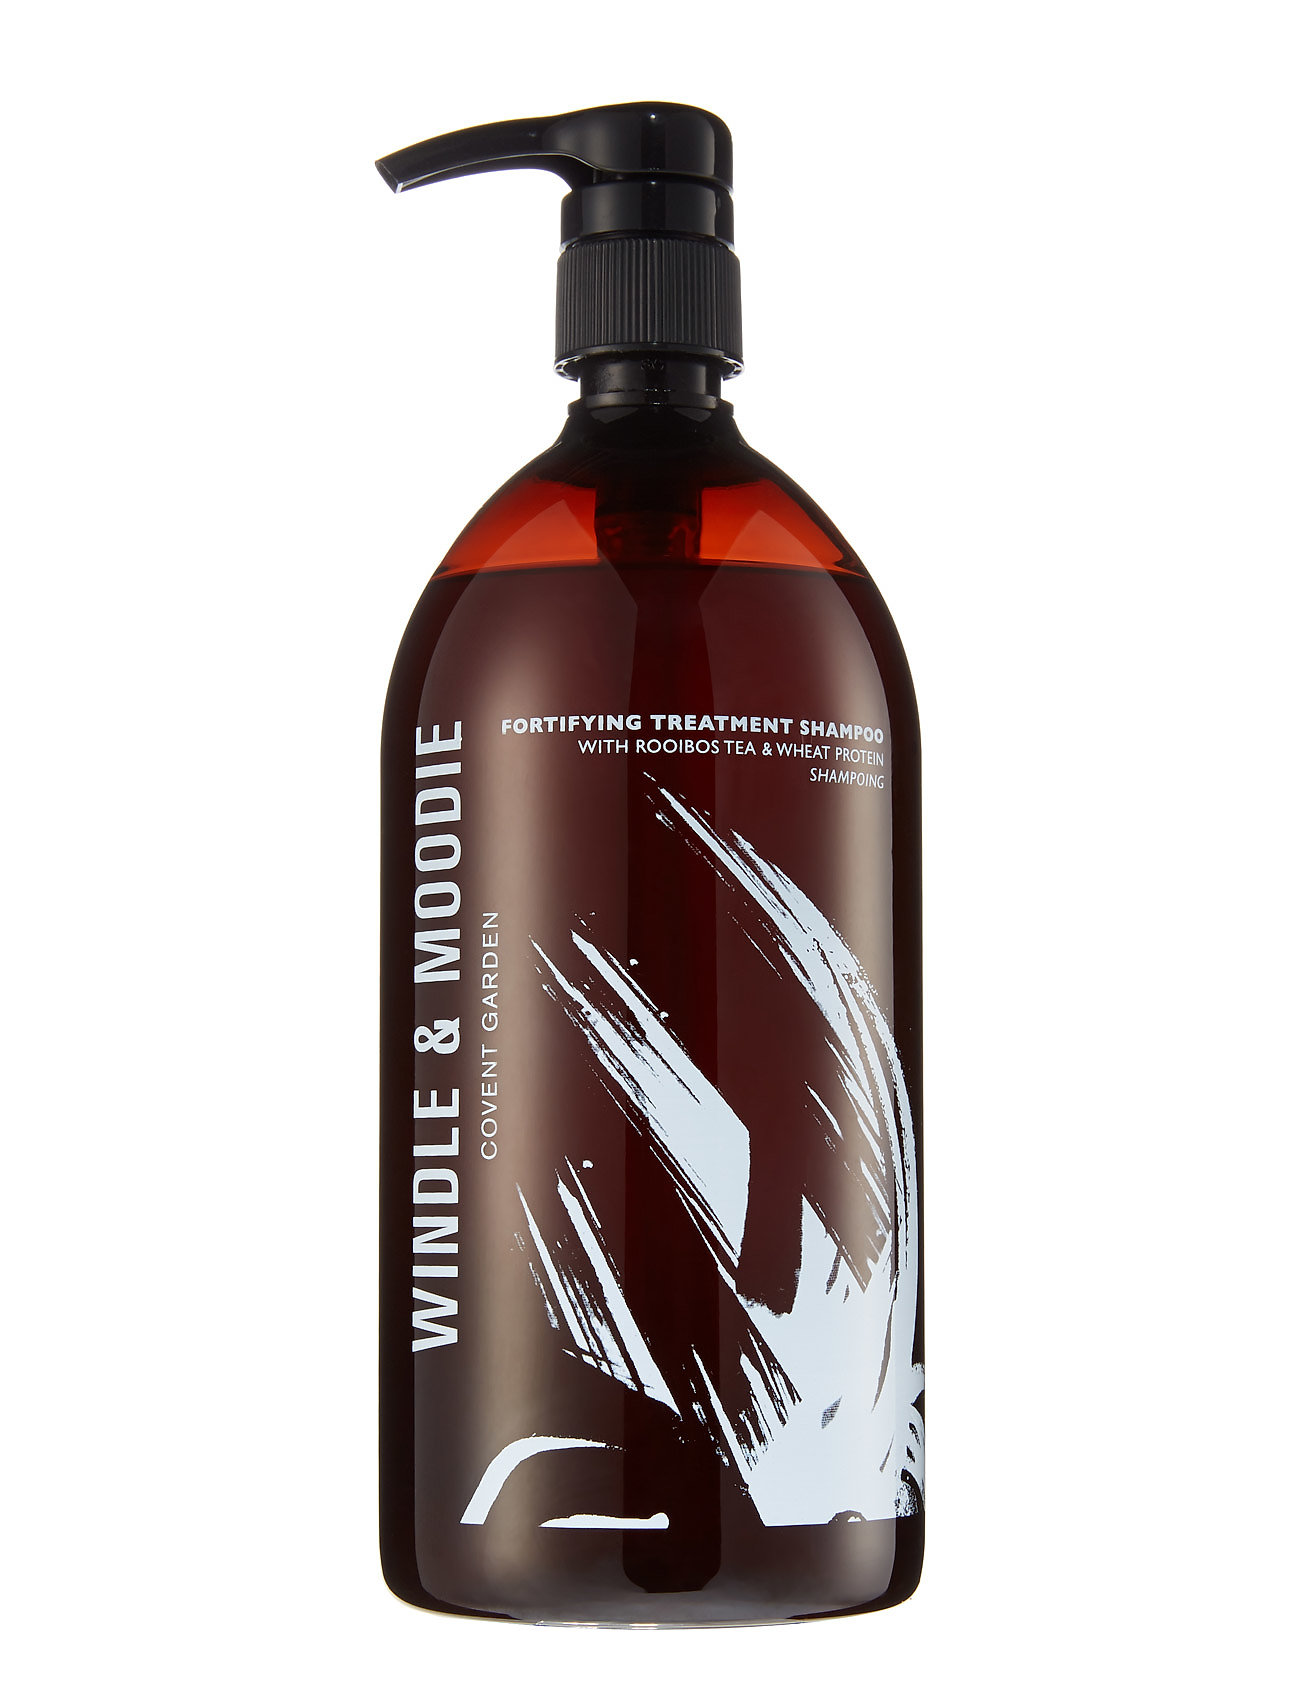 Fortifying treatment shampoo fra windle & moodie på boozt.com dk